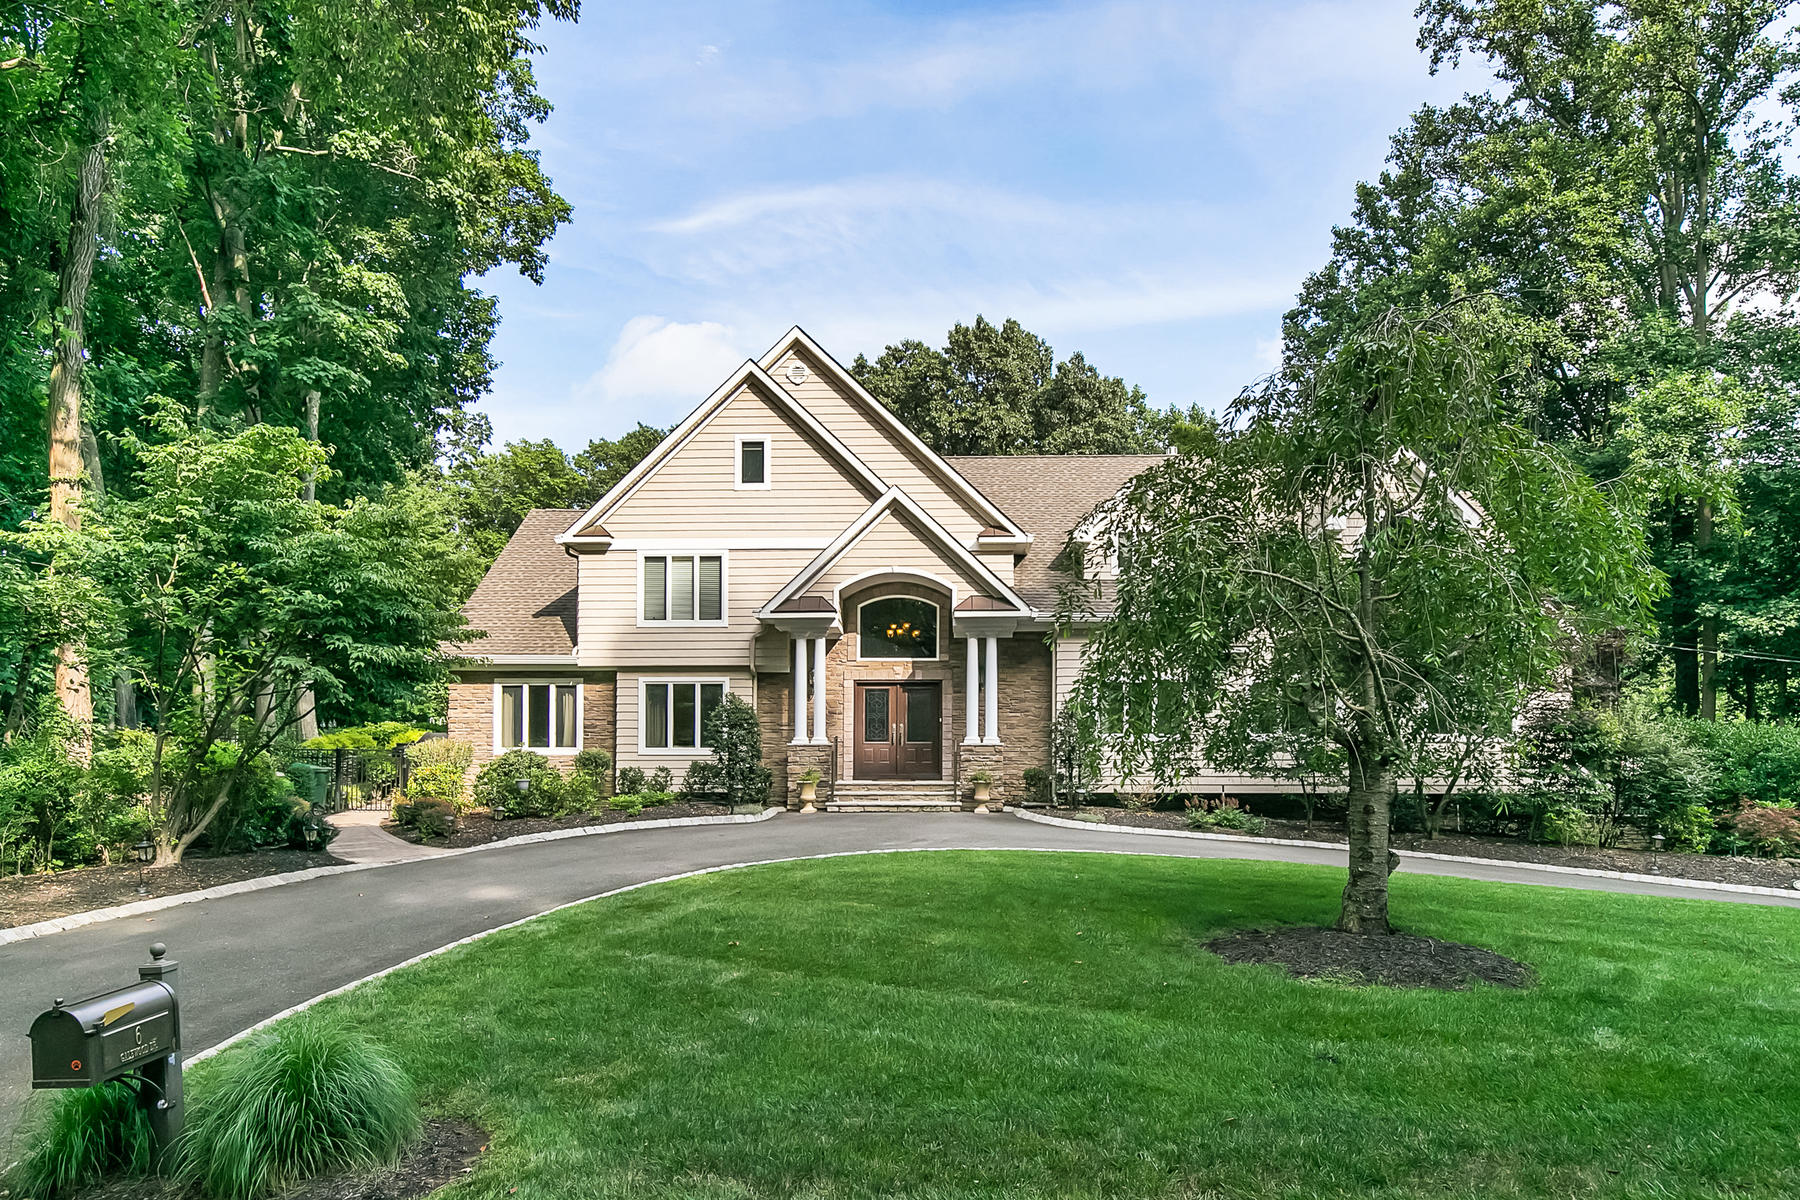 Single Family Homes for Active at Custom Home with Pool 6 Galewood Dr Holmdel, New Jersey 07733 United States